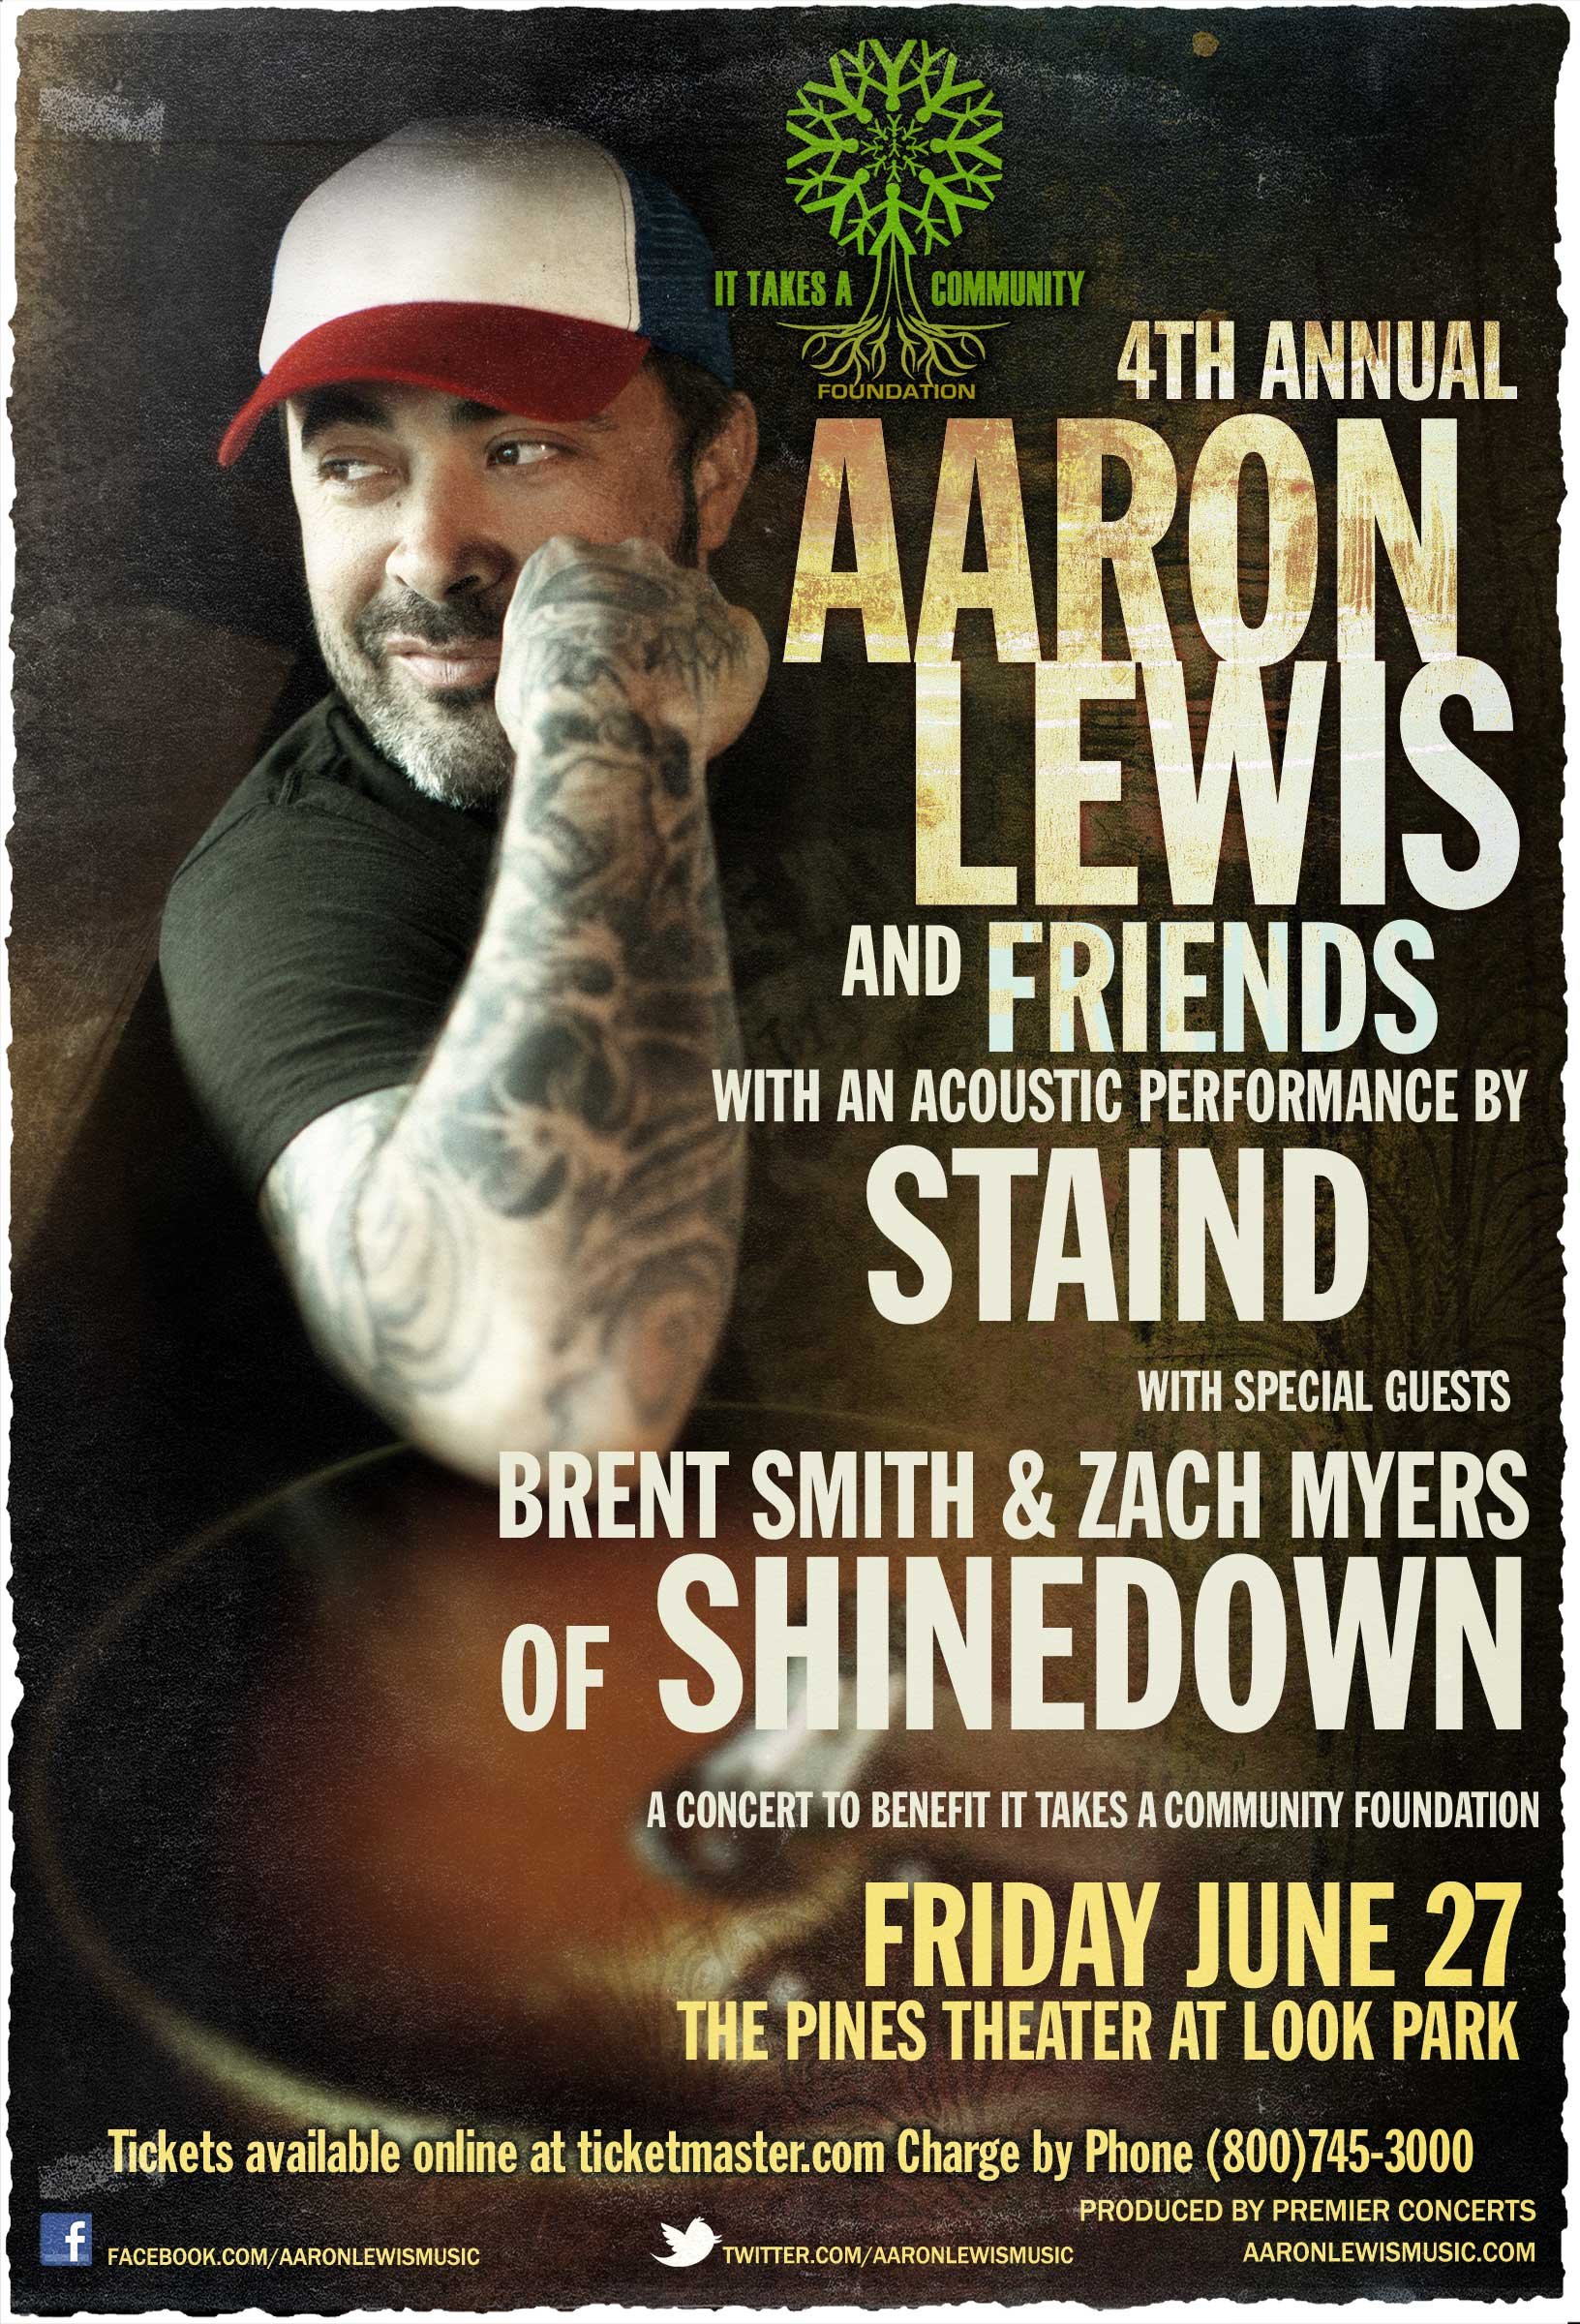 AARON LEWIS HOSTS THE 4TH ANNUAL IT TAKES A COMMUNITY FOUNDATION BENEFIT CONCERT